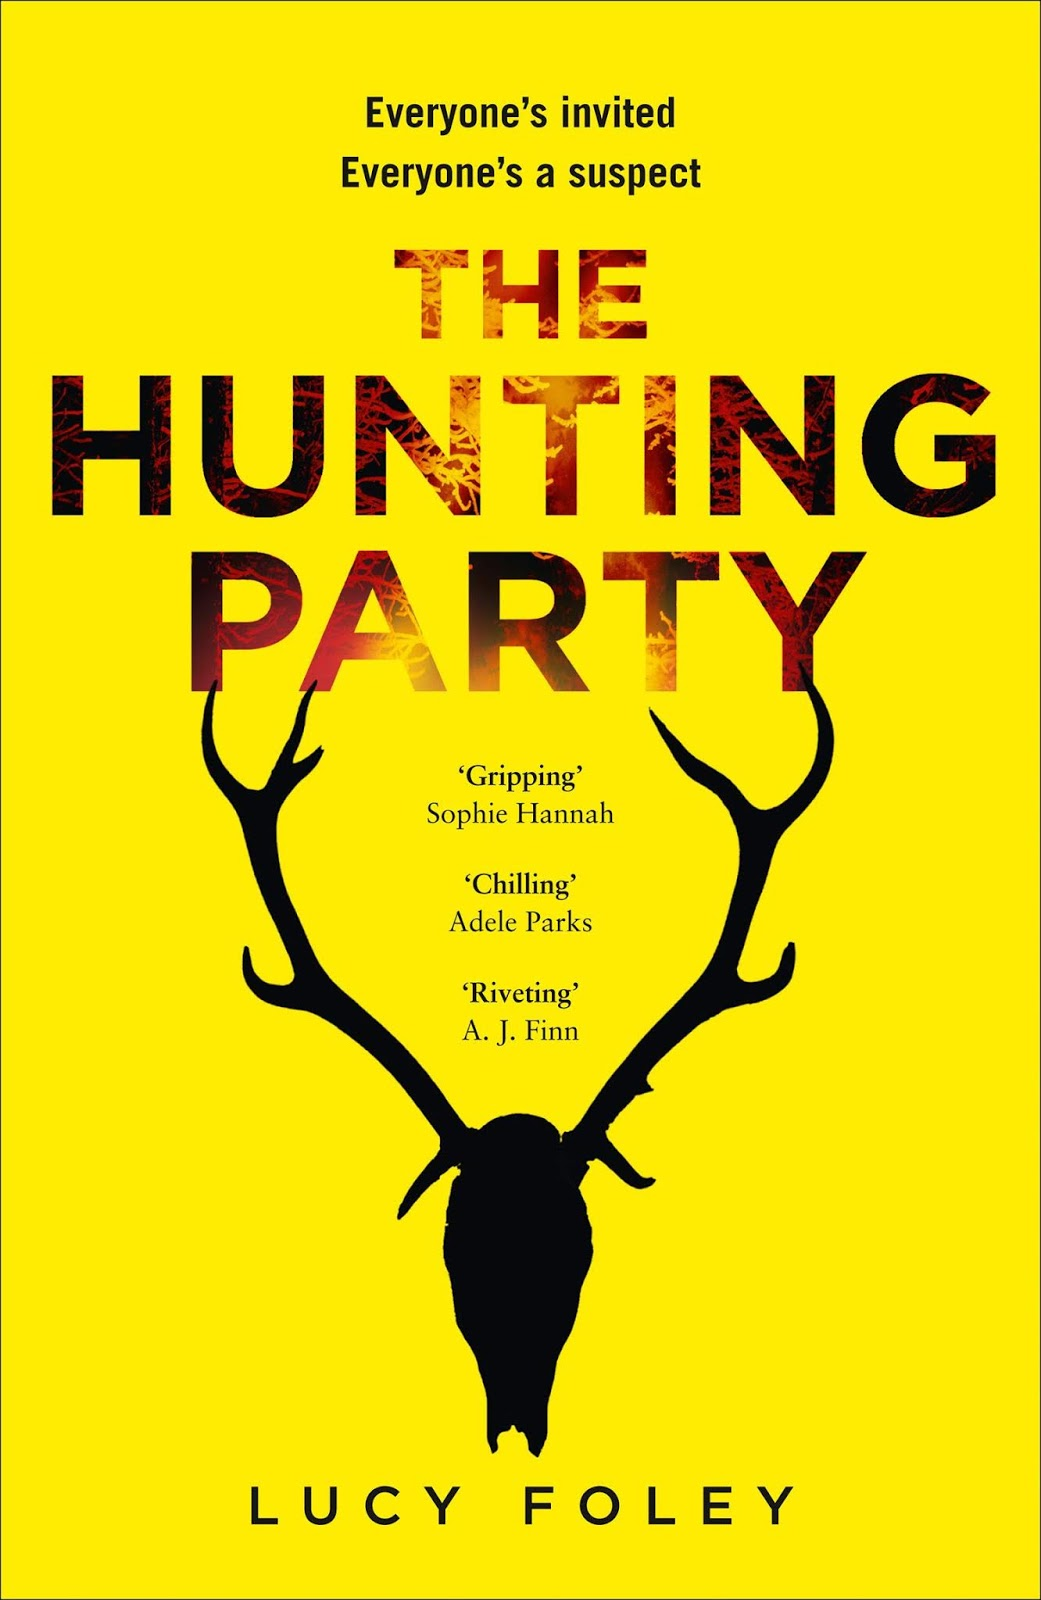 Book cover for The Hunting Party by Lucy Foley The Hunting Party in the South Manchester, Chorlton, Cheadle, Fallowfield, Burnage, Levenshulme, Heaton Moor, Heaton Mersey, Heaton Norris, Heaton Chapel, Northenden, and Didsbury book group